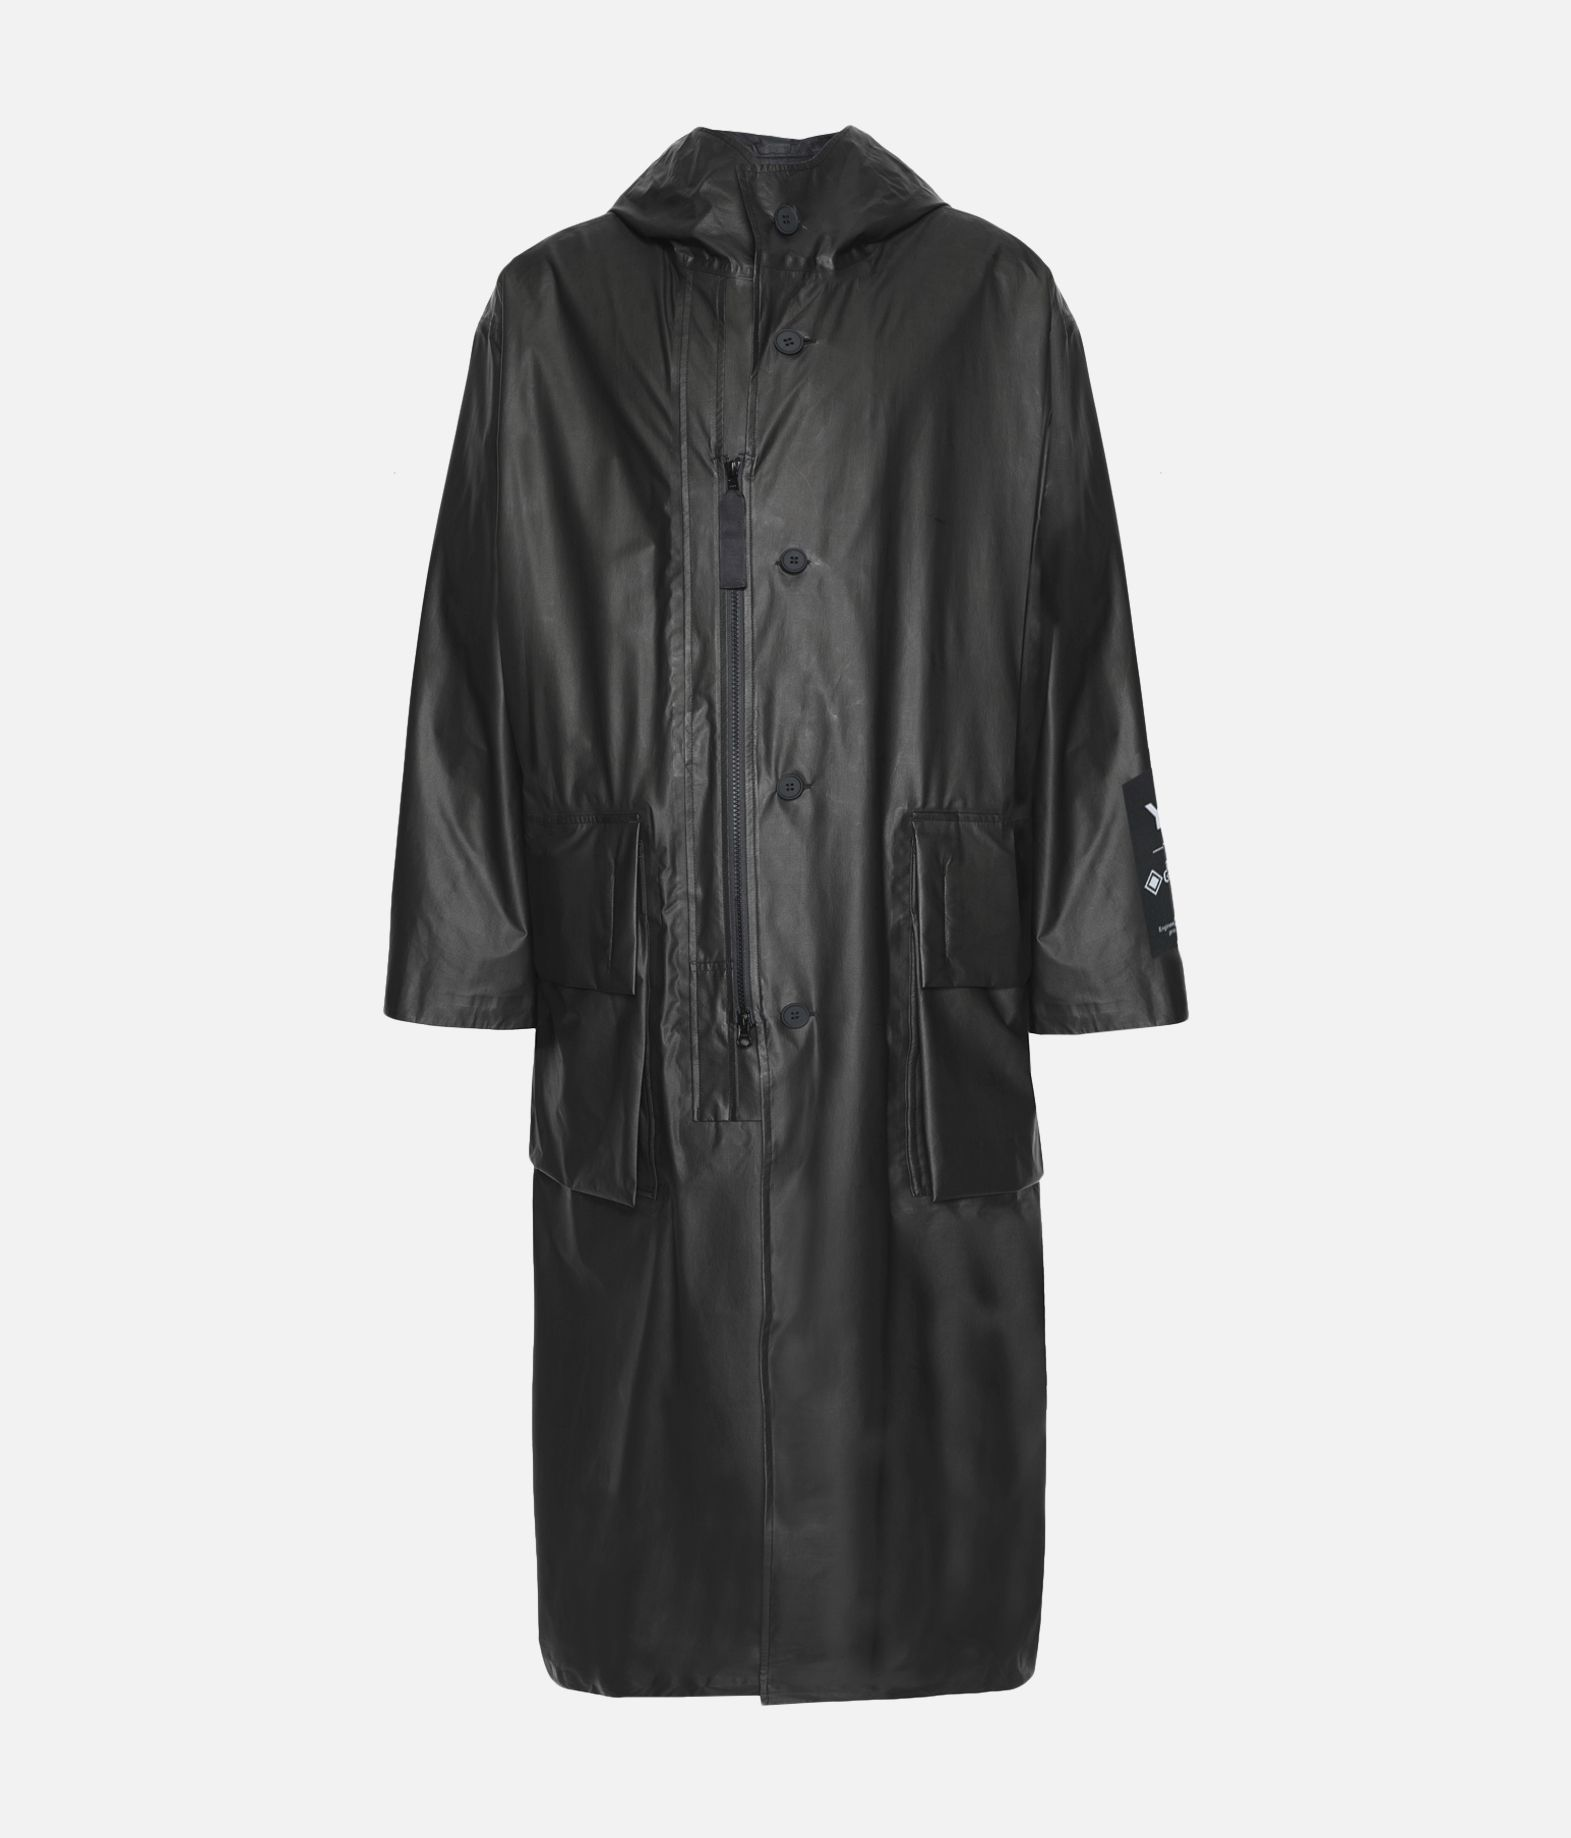 Y-3 Y-3 GORE-TEX Long Coat Raincoat Man f